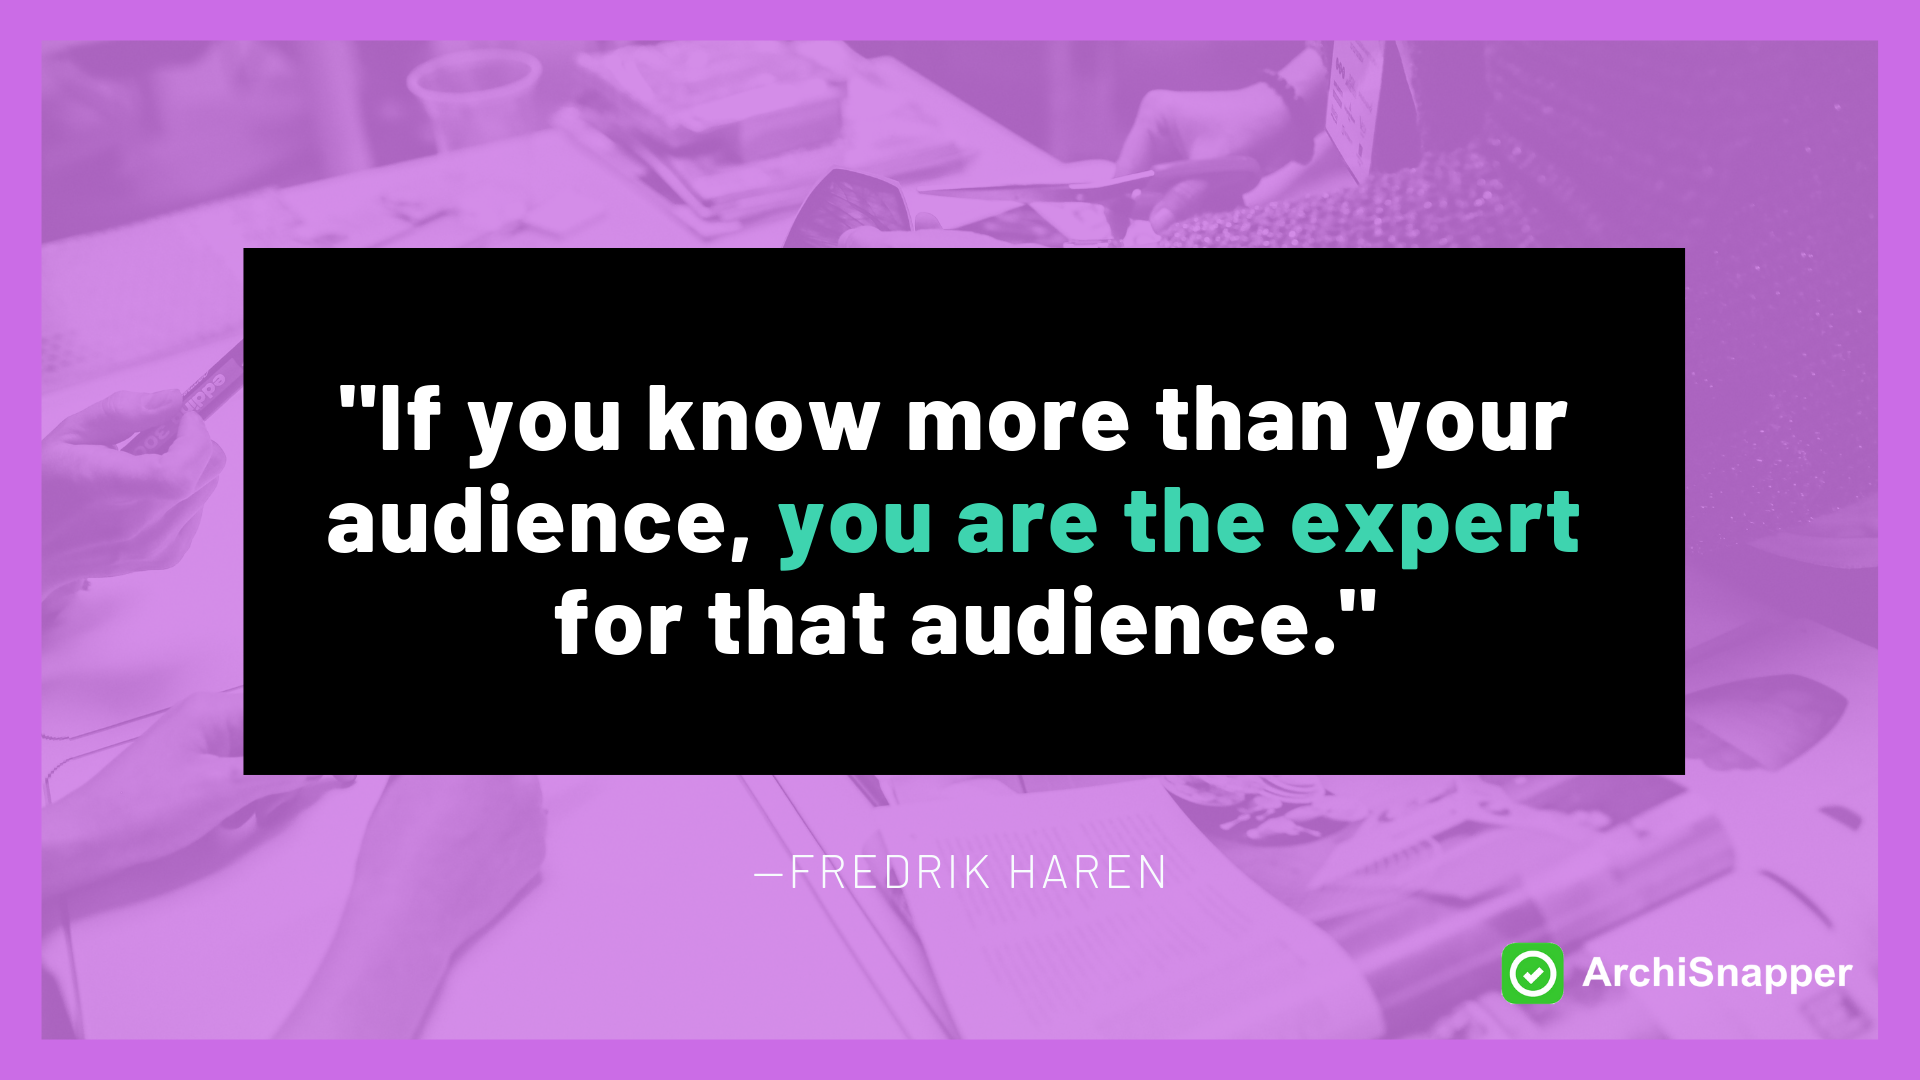 Fredrik Haren quote on being an expert | Archisnapper